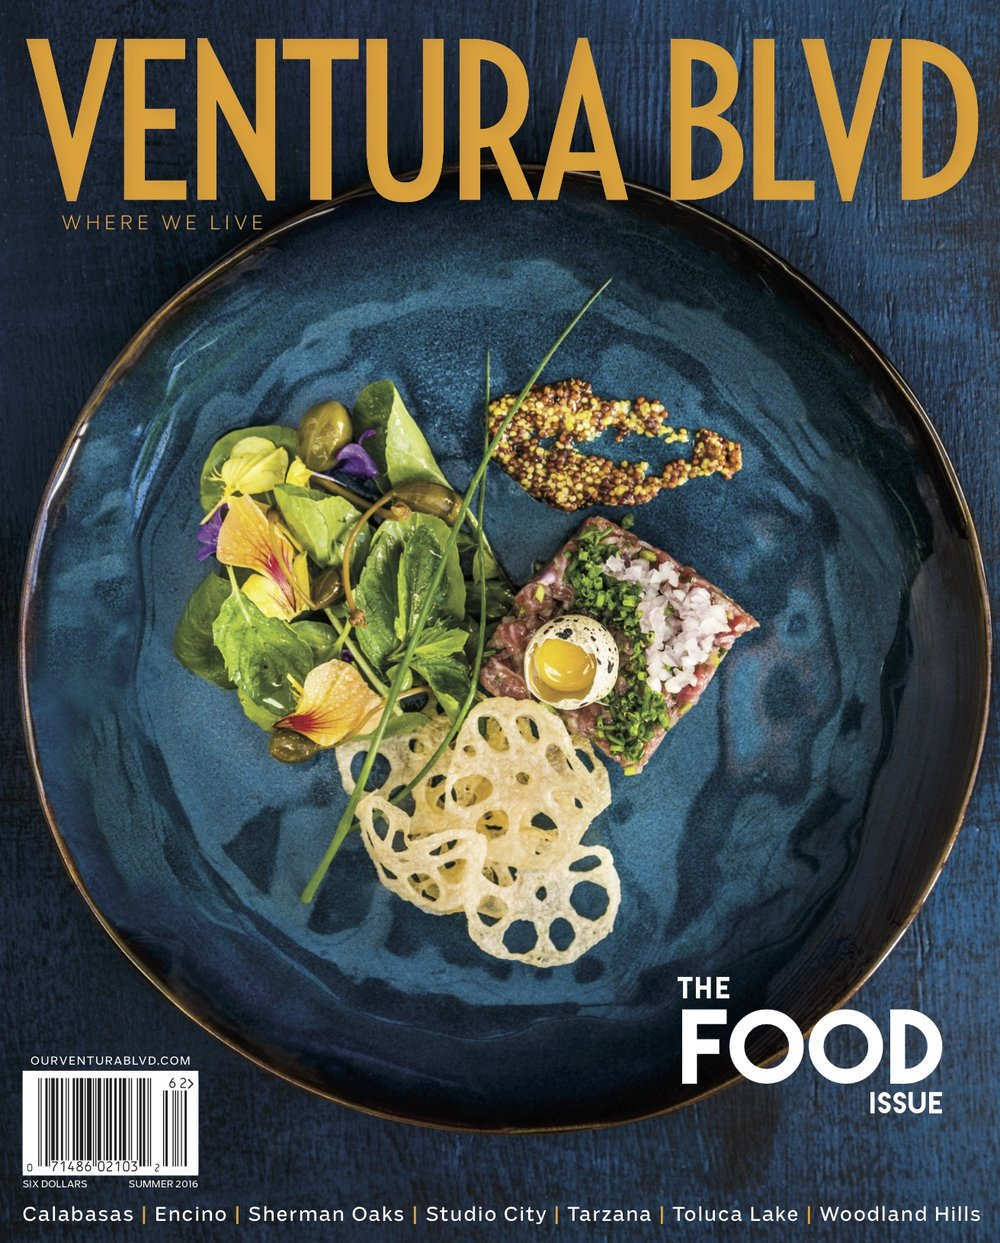 VENTURA BLVD FOOD ISSUE COVER 2016